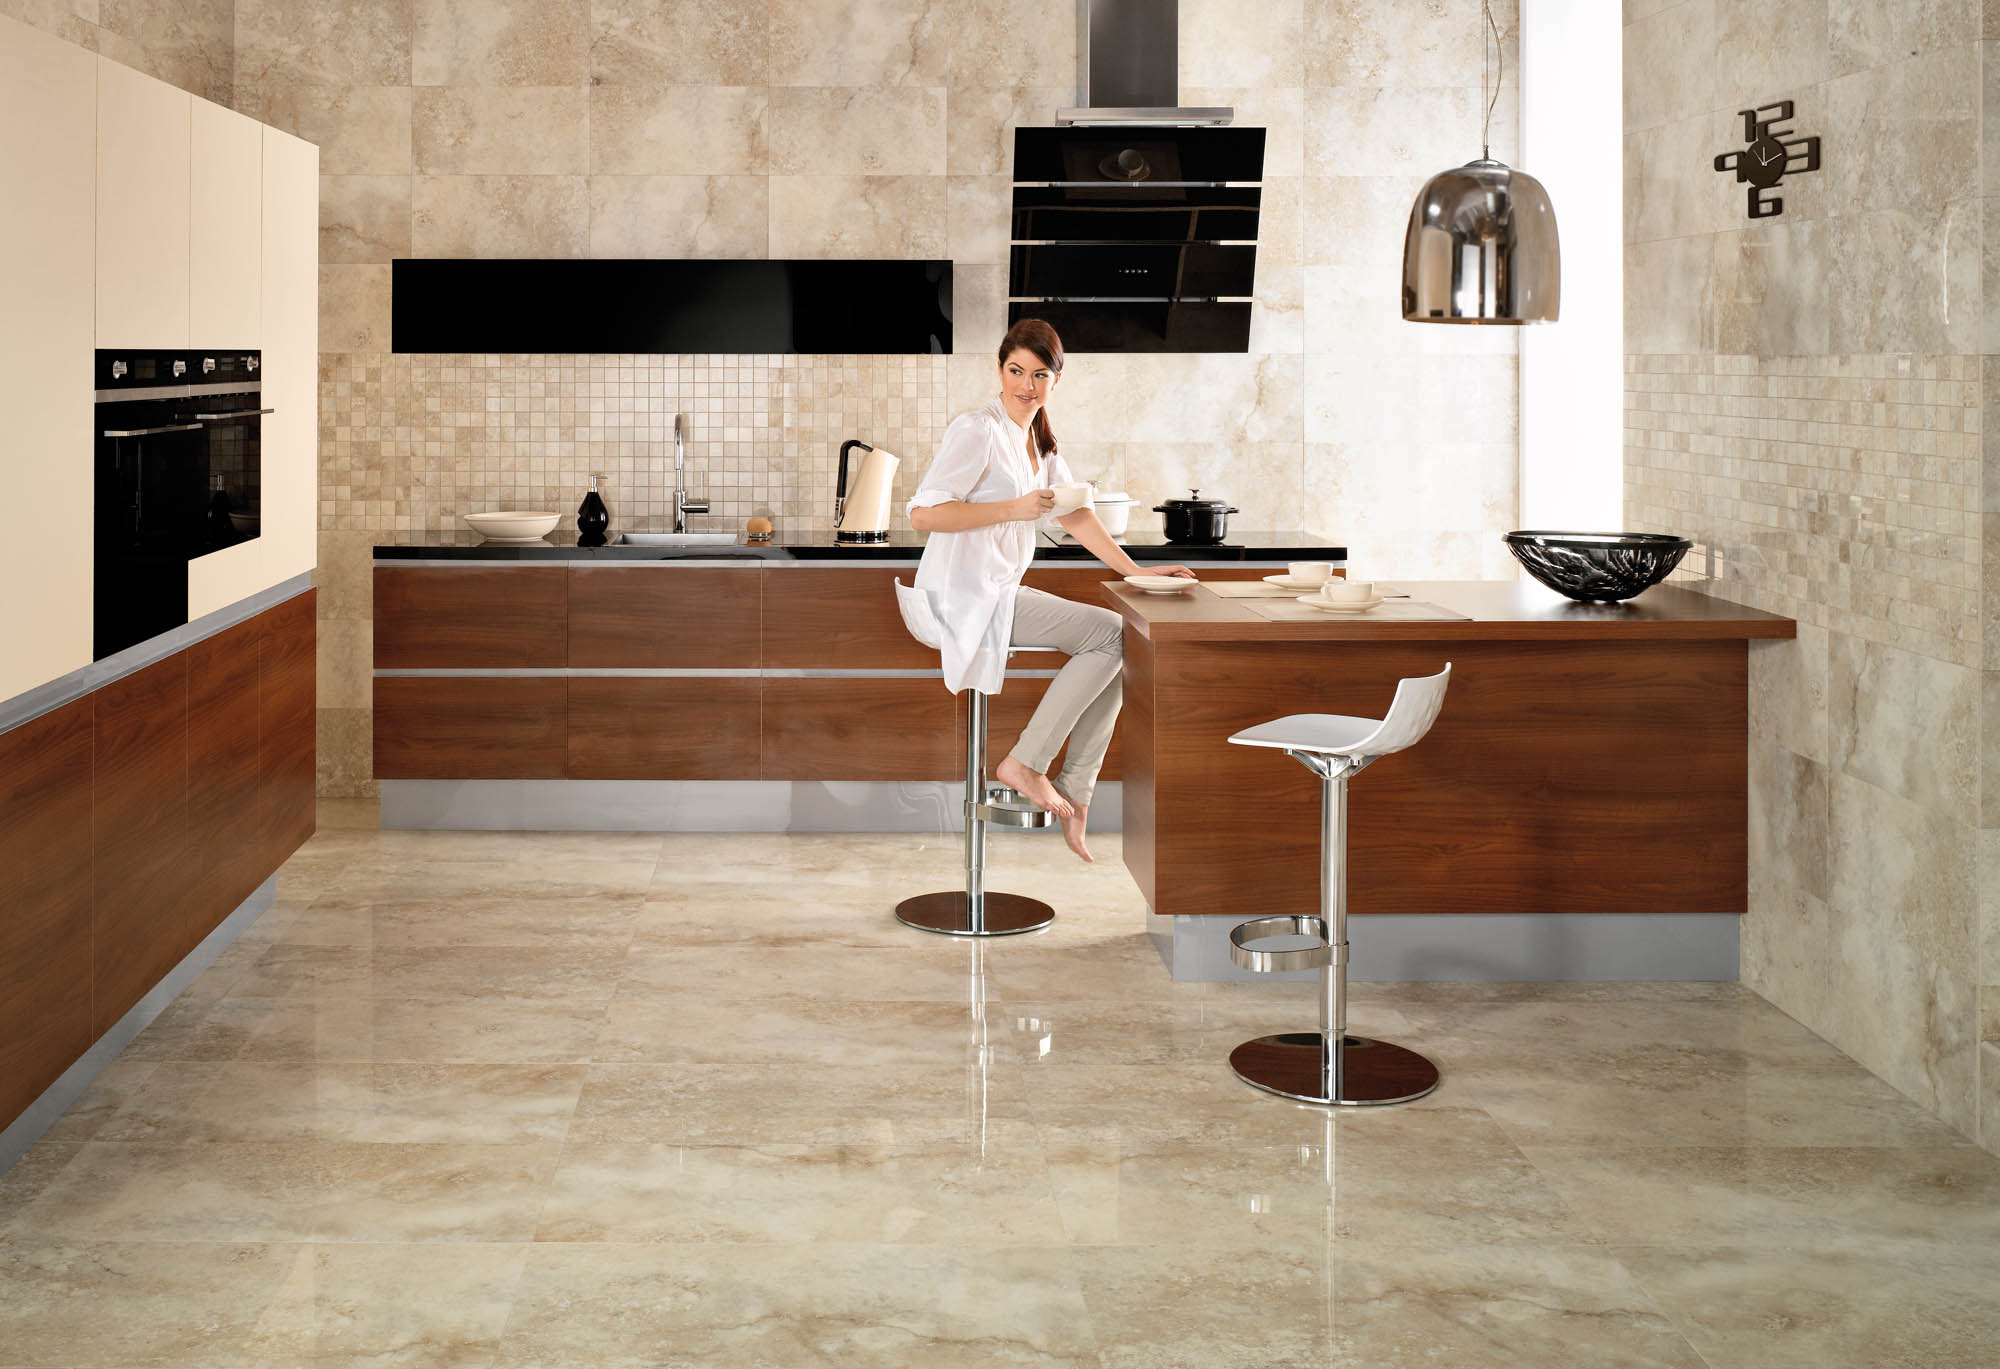 How To Properly Clean Ceramic Floors